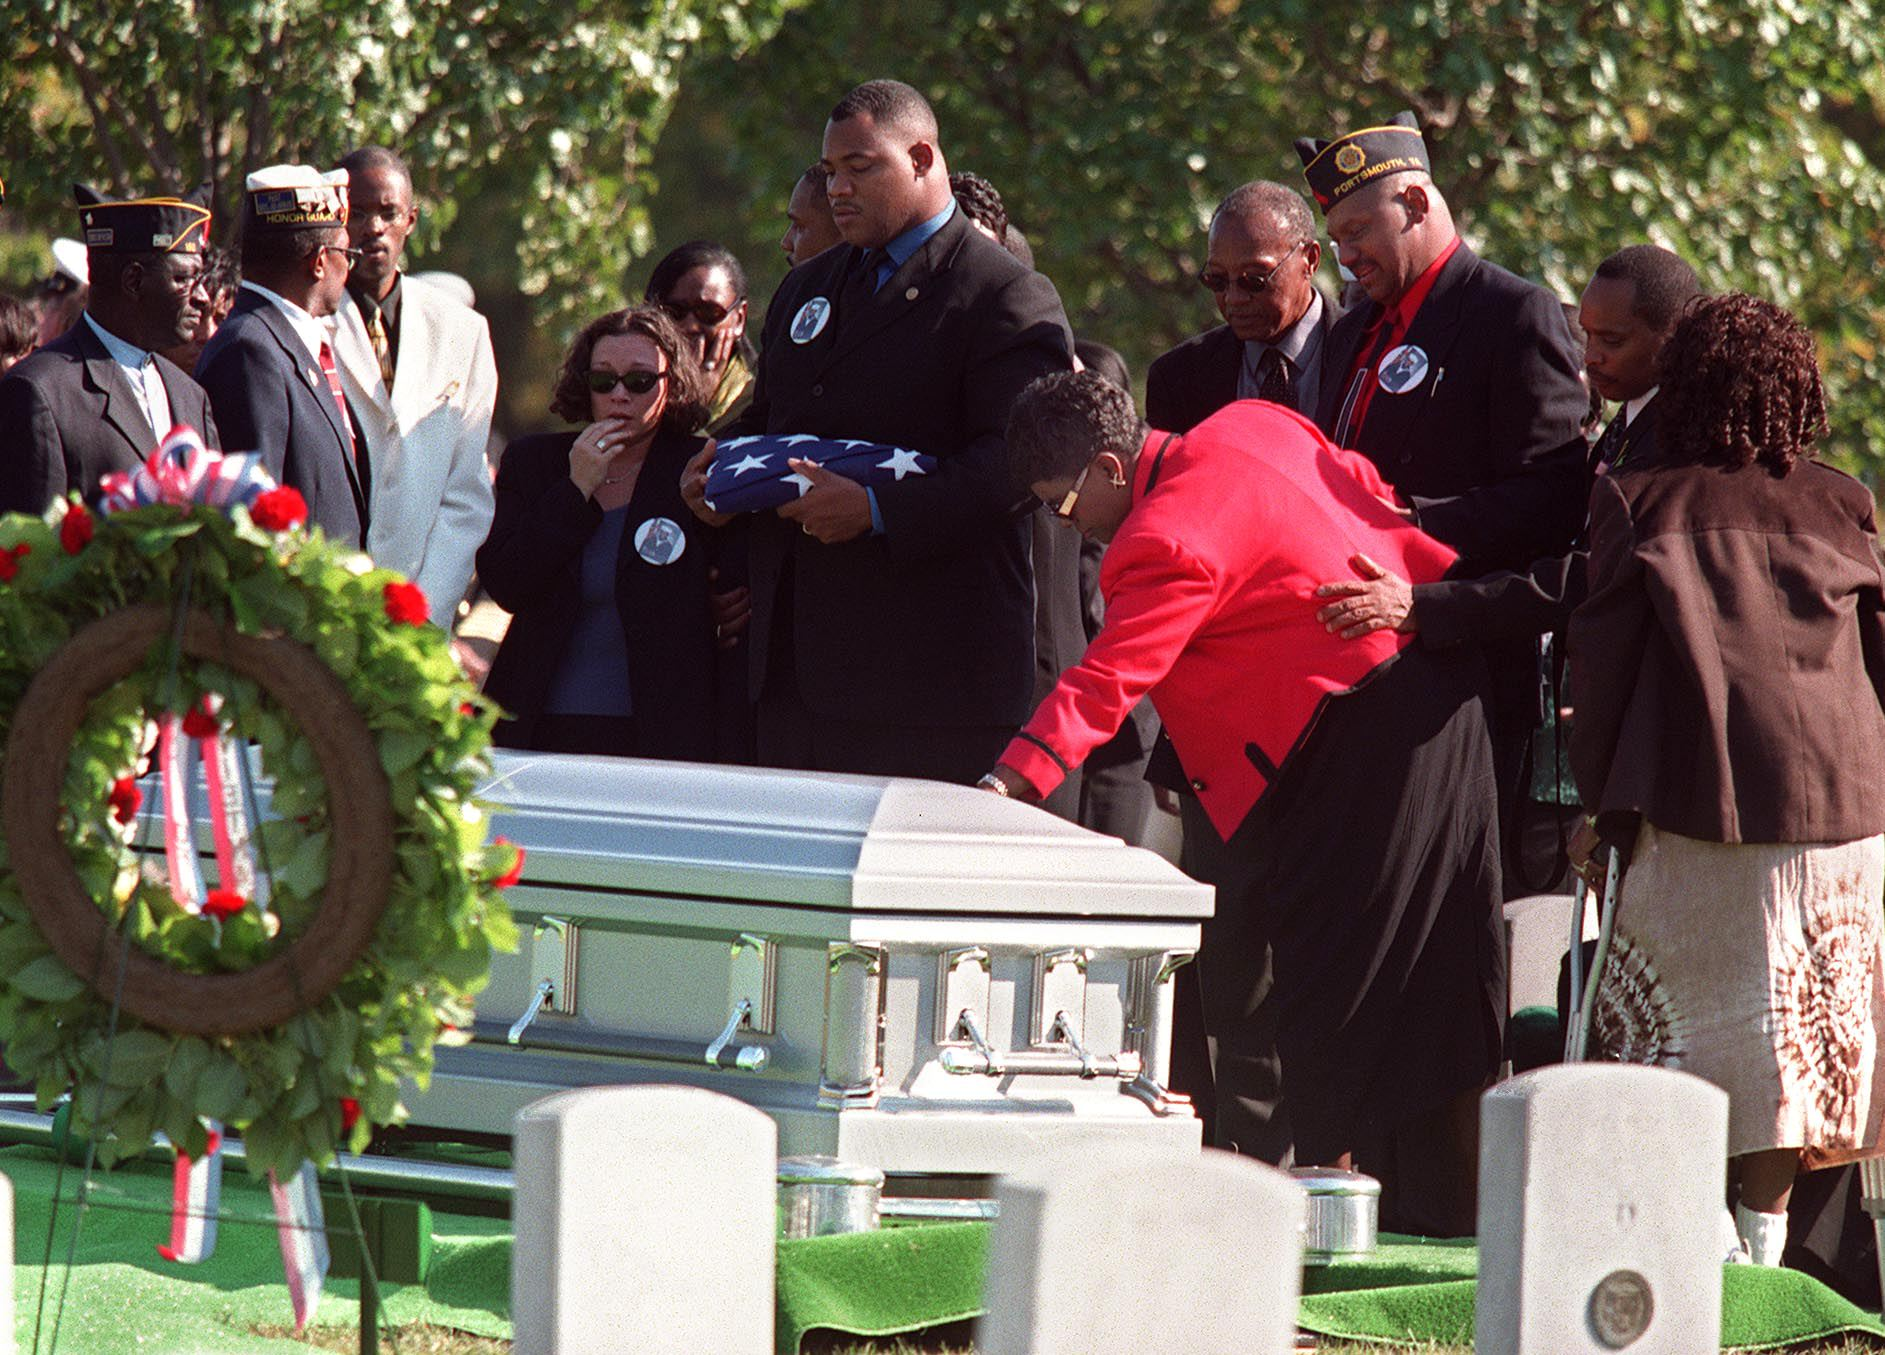 Mona Gunn (red jacket) touches the casket of her son, US Navy Signalman Seaman Apprentice Cherone Louis Gunn, as her husband Louge (3rd R) and son Anton (C) with family members look on 20 October 2000 during funeral services at Arlington National Cemetery in Virginia. Gunn was one of 17 US sailors killed in the suicide bombing attack of the USS Cole in the Yemeni port of Aden 12 October. (MANNY CENETA/AFP/Getty Images)